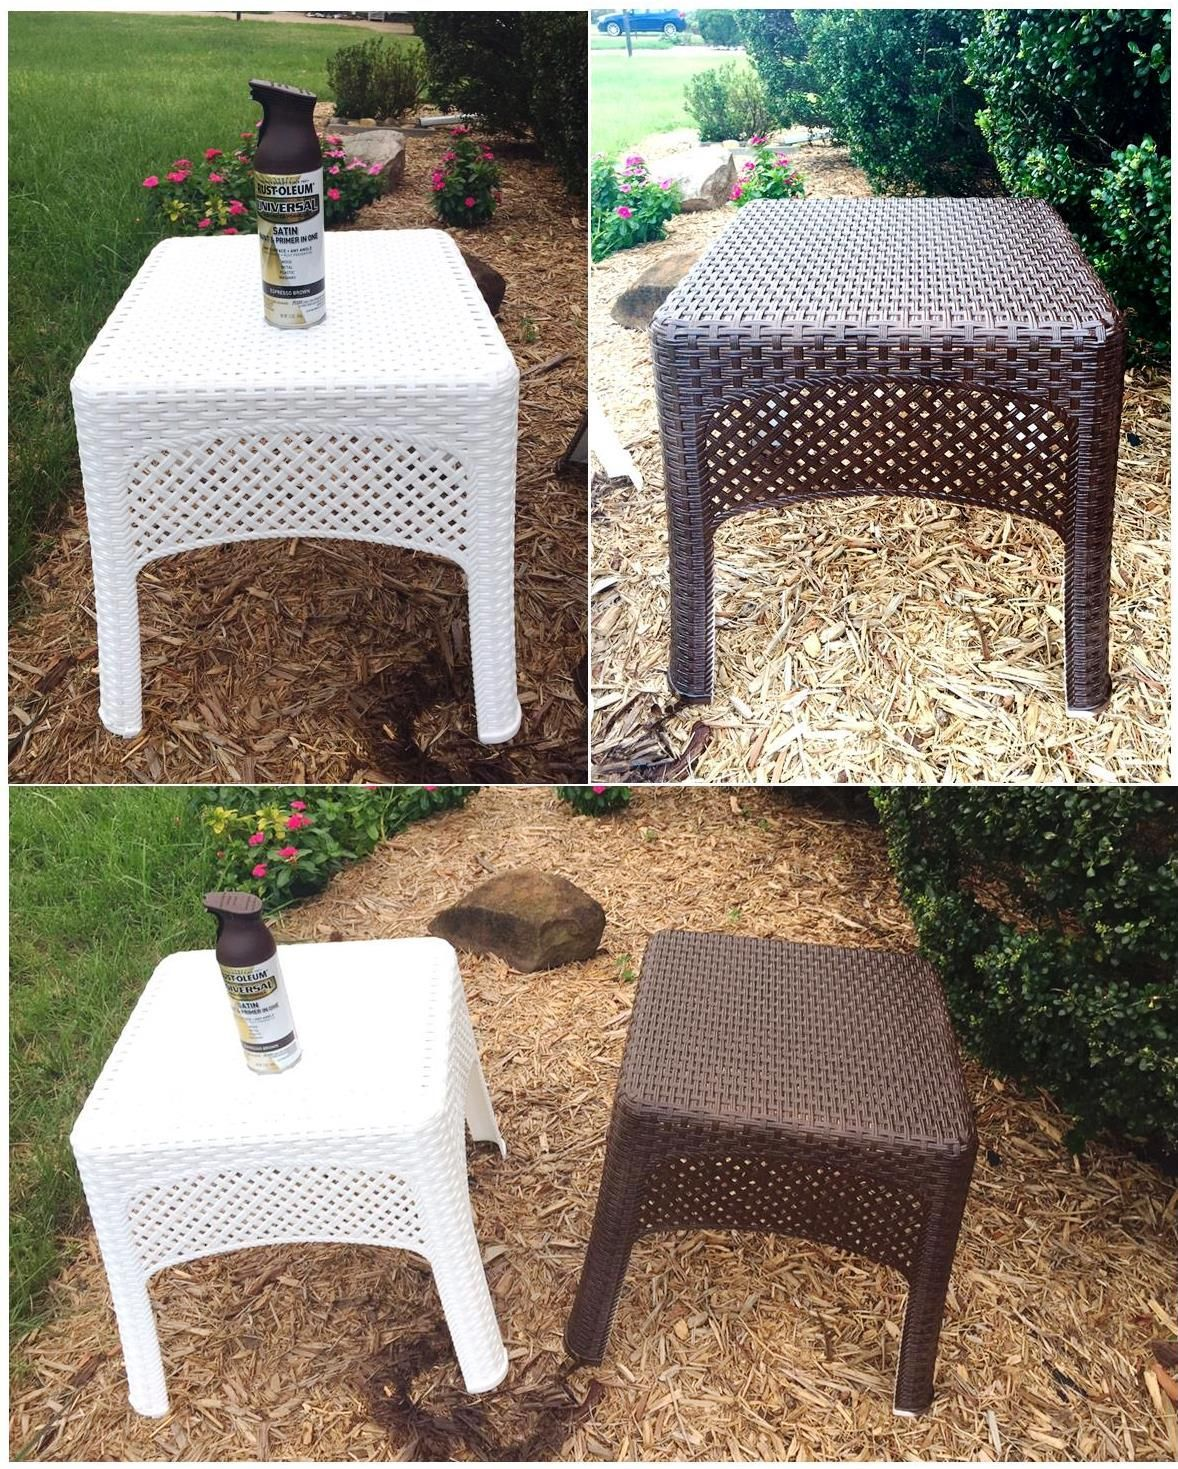 All Surface Satin Espresso Brown Spray Paint And Primer In One Transform Plastic Furnitur Painting Wicker Furniture Resin Wicker Furniture Spray Paint Wicker